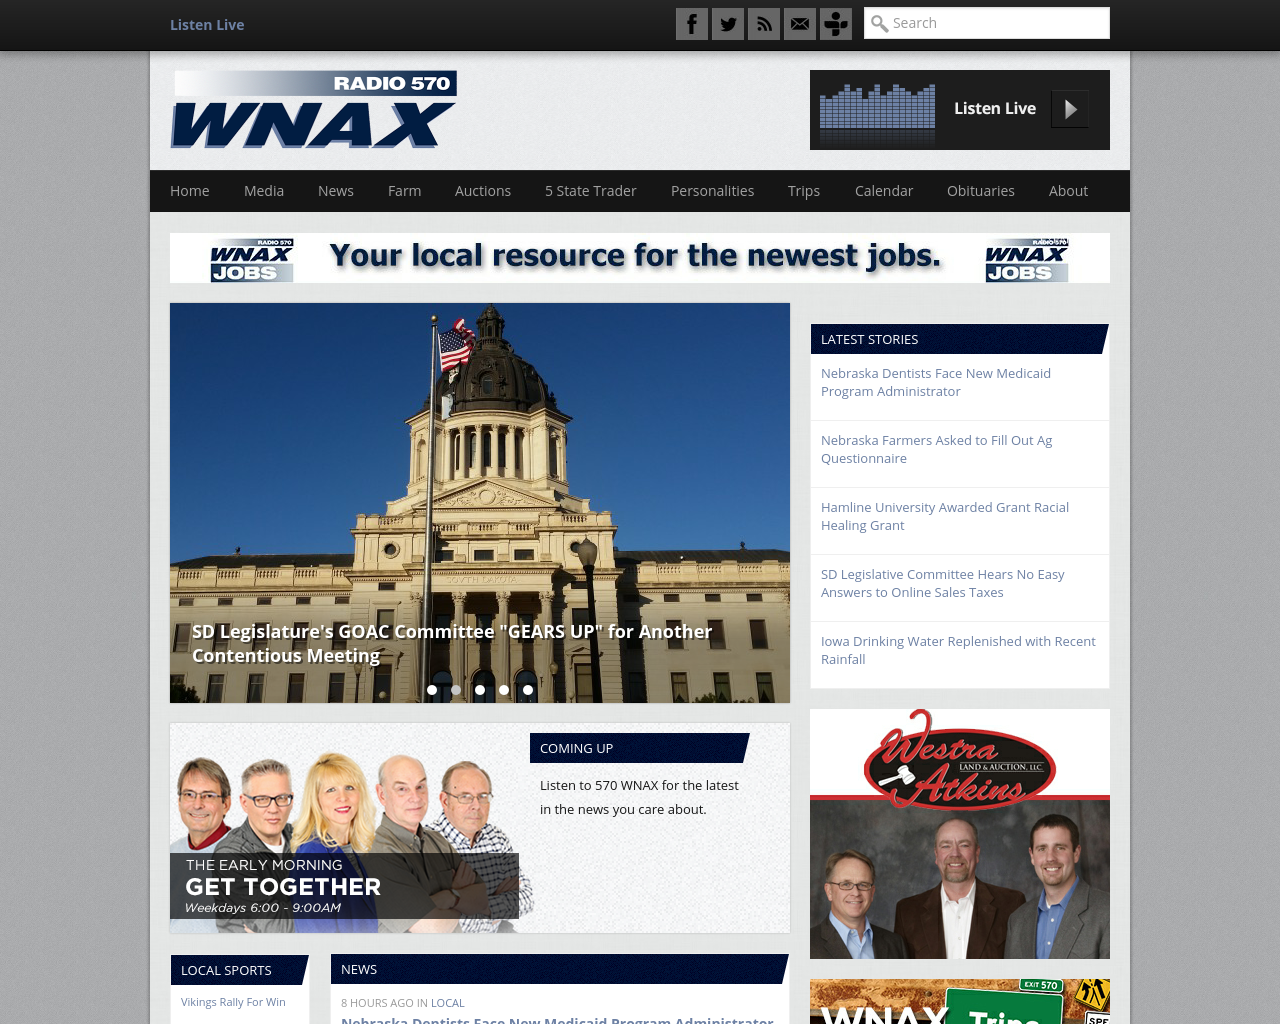 Radio-570-WNAX-Advertising-Reviews-Pricing